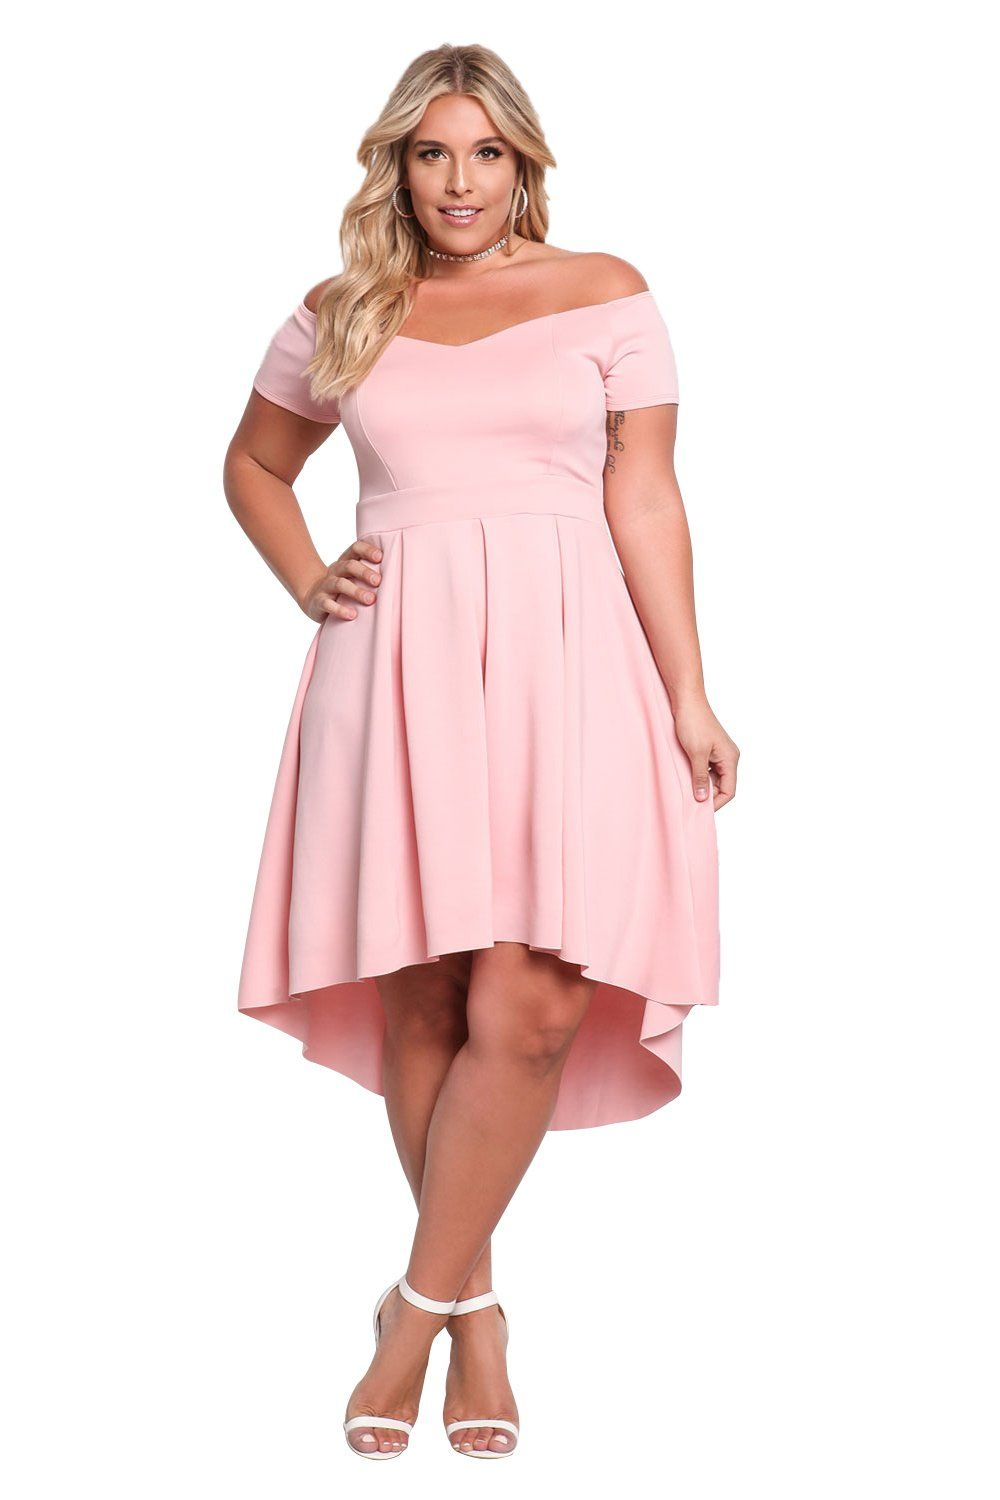 B Chicloth Solid Plus Size Dresses For Women Plus Size Wedding Dresses With Sleeves Plus Size Club Dresses Plus Size Dresses [ 1500 x 1000 Pixel ]